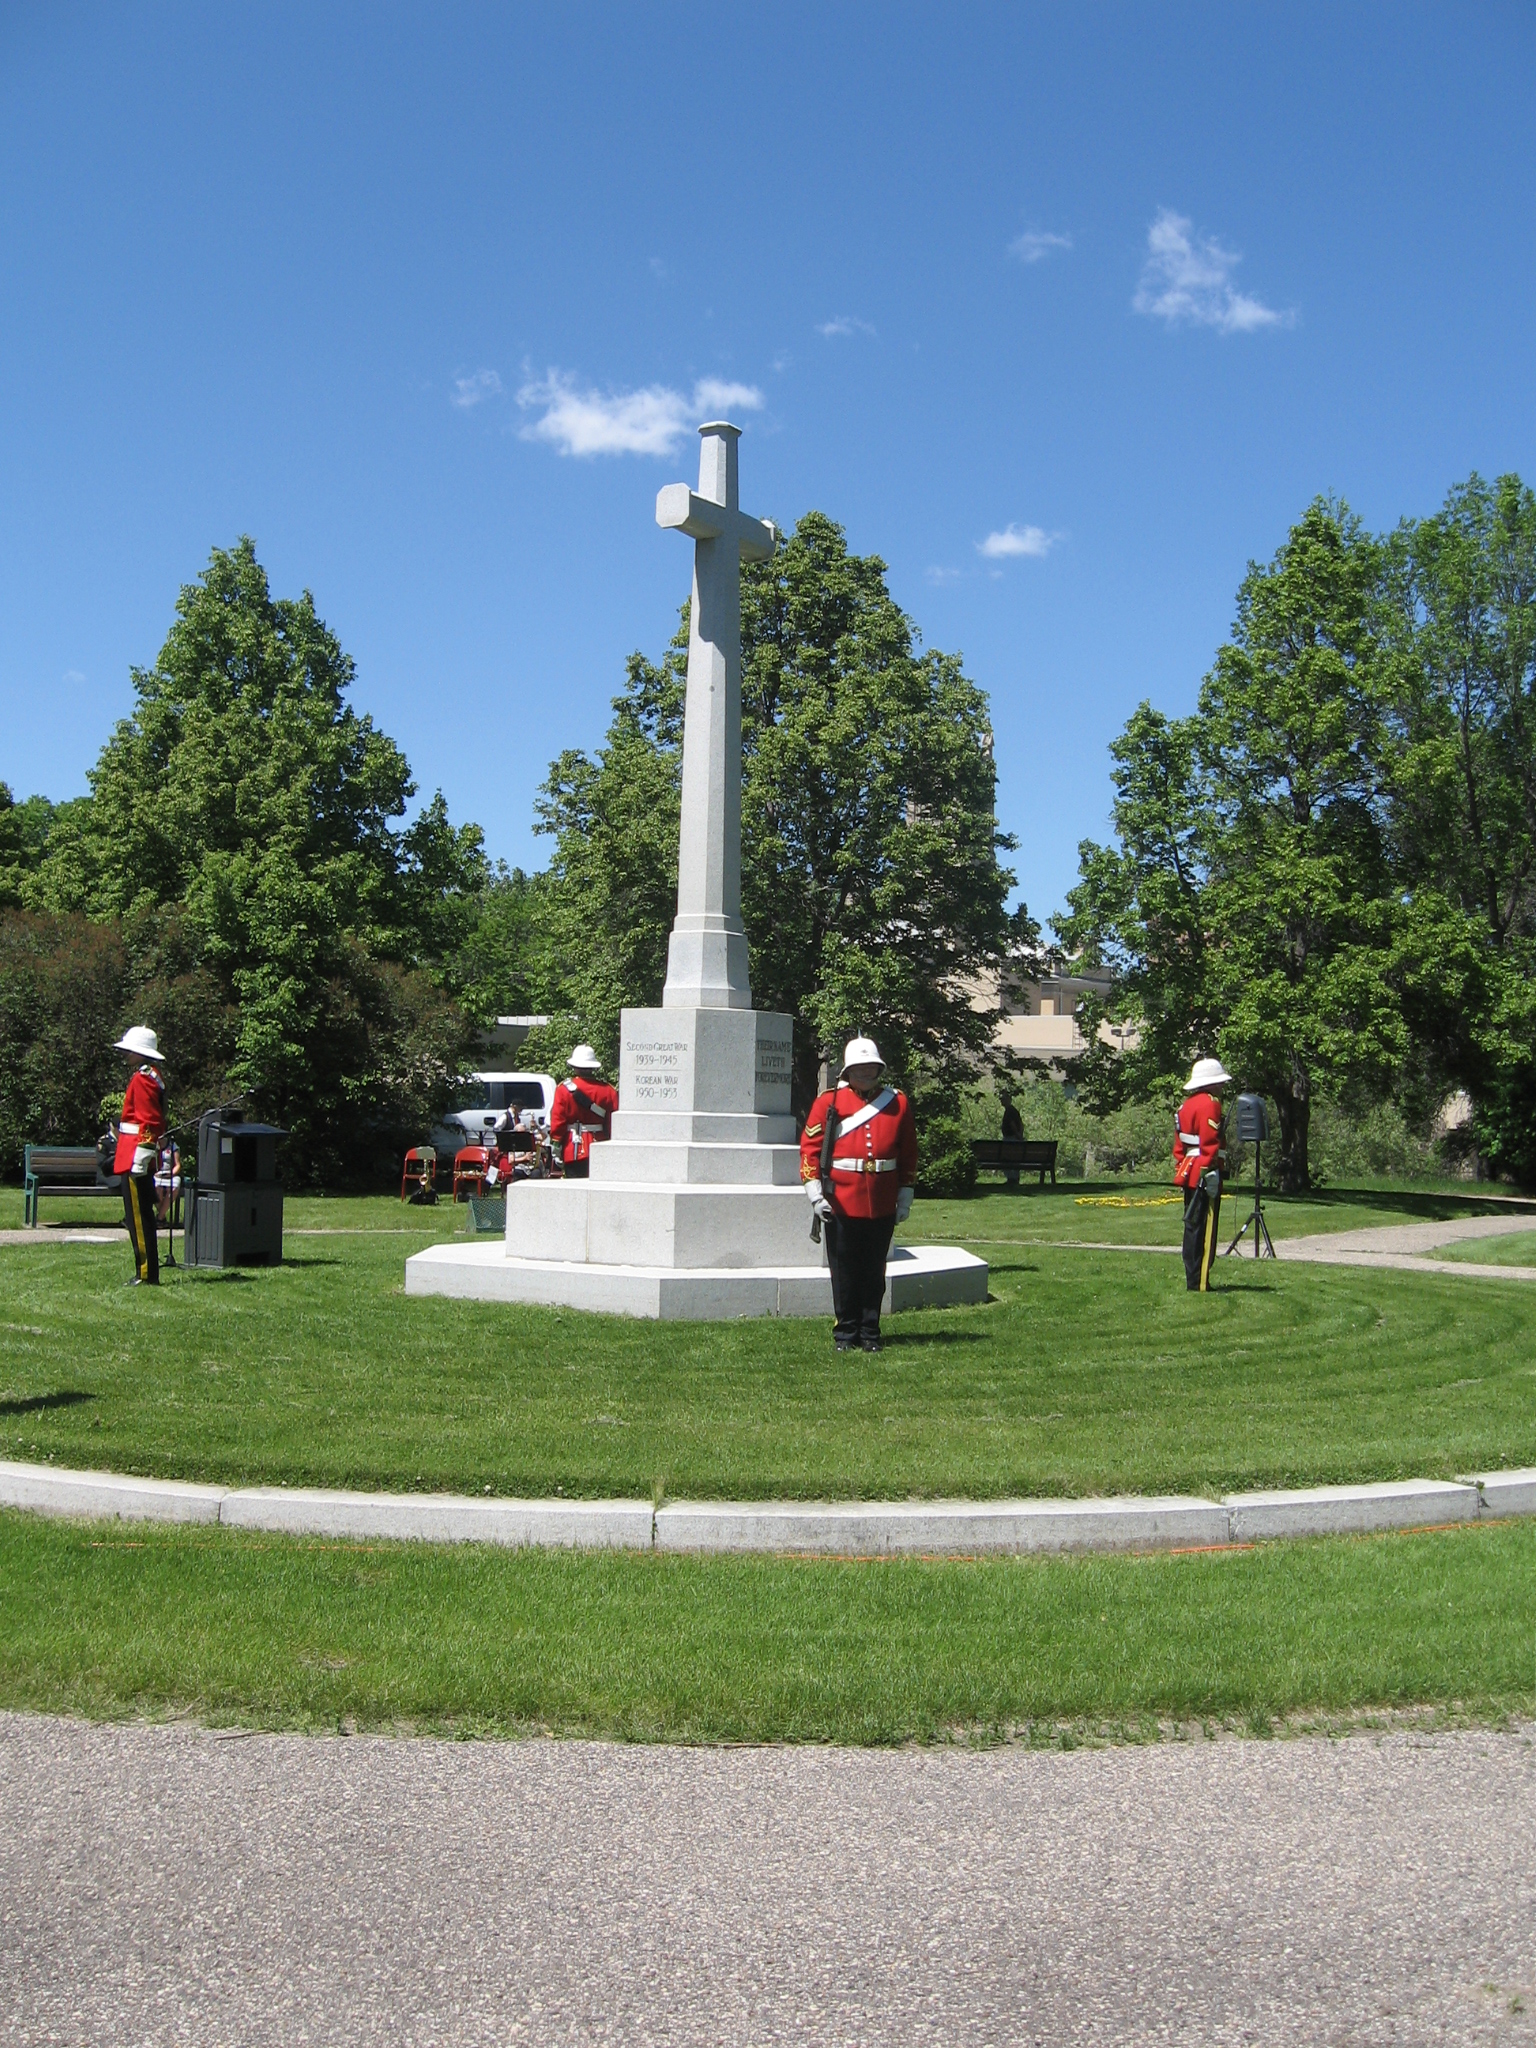 2019 DECORATION DAY CEREMONIES – Sunday, June 2nd – To mark the occasion and pay homage to the men and women who have served, Legion members, family members and other volunteers place Canadian flags on veterans' graves – all interested persons are welcome.     -Sunset Cemetery - Decoration of graves @ 9:00 am Saturday, June 1st – Service @ 10:00 am Sunday, June 2nd    -Moose Jaw Cemetery (East) – Decoration of graves @ 10:00 am Sunday June 2nd – no service    -Rosedale Cemetery – Decoration of graves @ 10:00 am Sunday June 2nd – service to follow at 11:00 am    -Crescent Park Cenotaph – Parade & Service at @ 2:00 pm     There will be a public Hamburger BBQ ($5) at Philip Heaton Hall at the Legion, 268 High St W  starting at 4:00 pm following  the Crescent Park service. All adults and children are most welcome. Please call 306-692-5453 for more information.